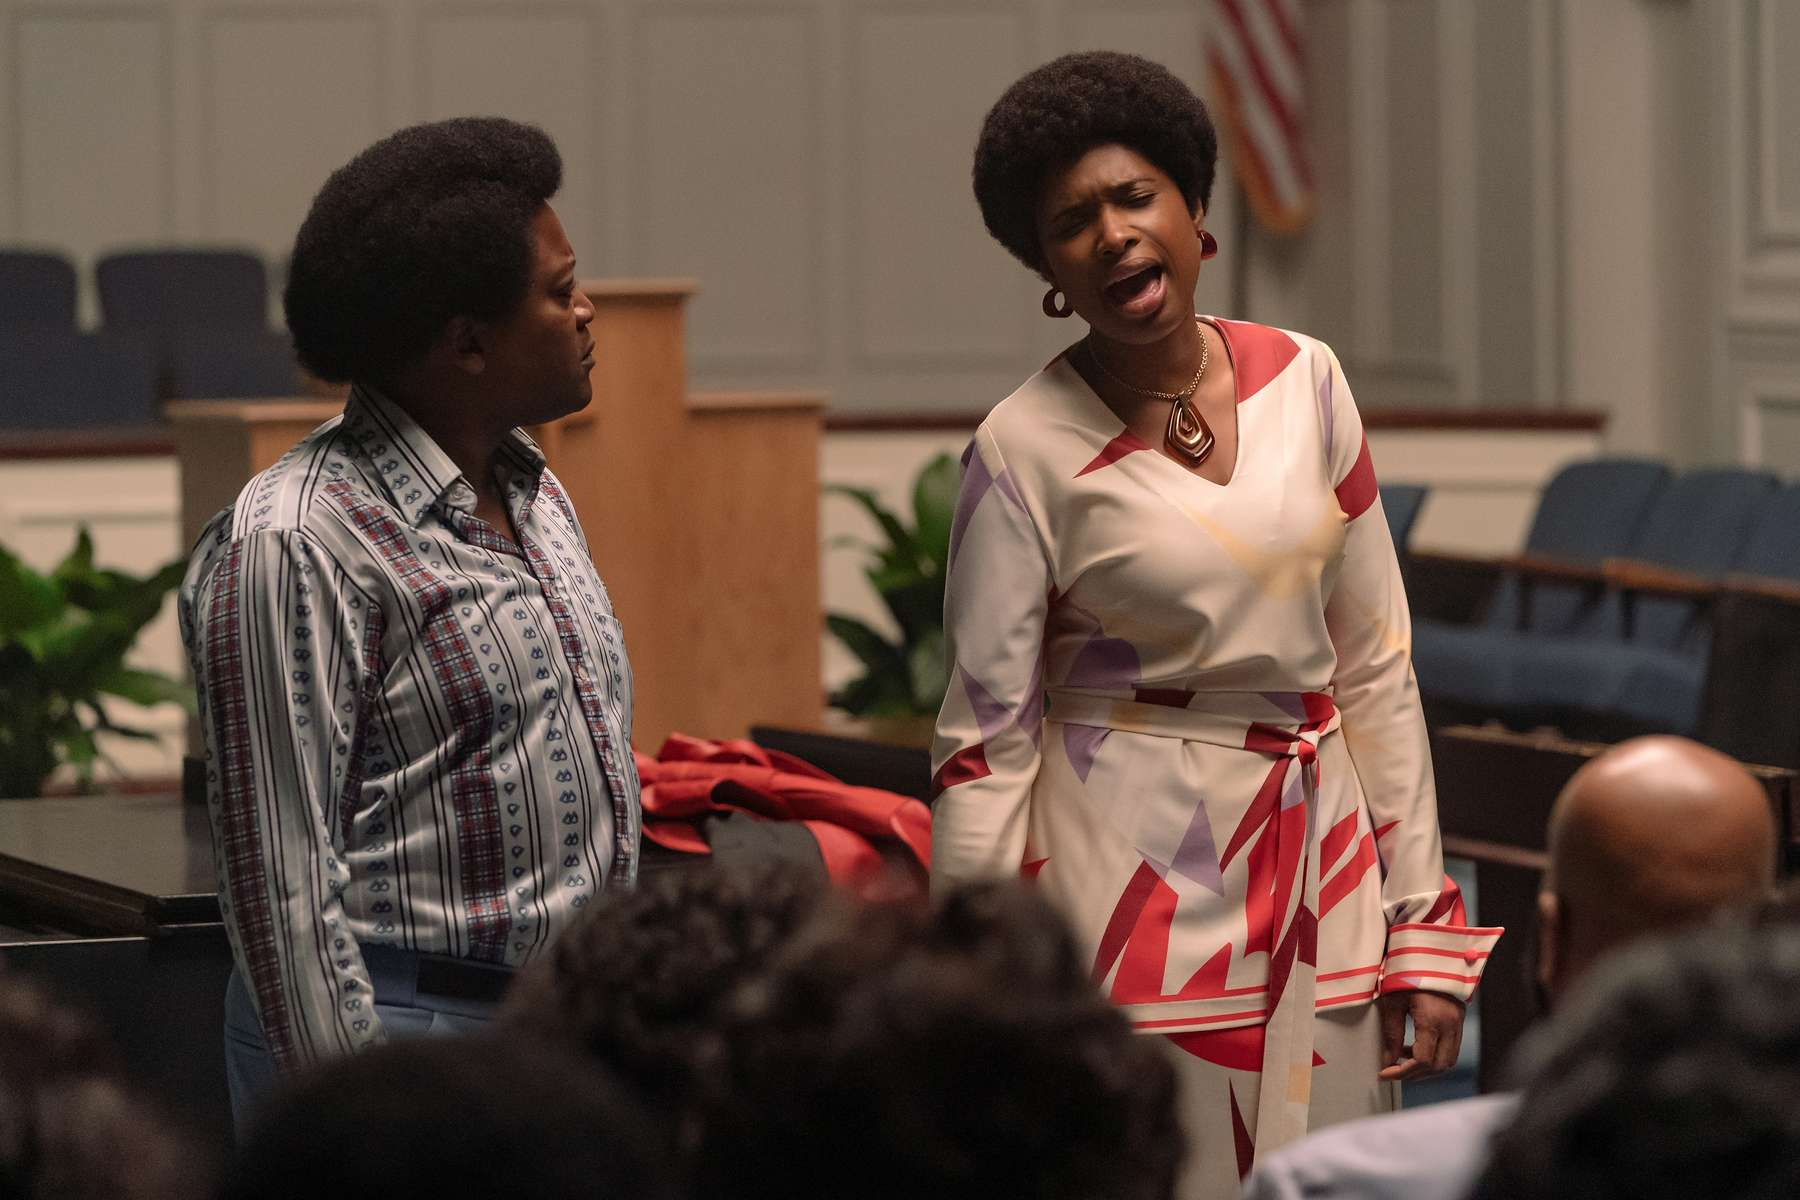 R_22584_RCTituss Burgess stars as Reverend Dr. James Cleveland and Jennifer Hudson as Aretha Franklin inRESPECT, A Metro Goldwyn Mayer Pictures filmPhoto credit: Quantrell D. Colbert© 2021 Metro-Goldwyn-Mayer Pictures Inc. All Rights Reserved